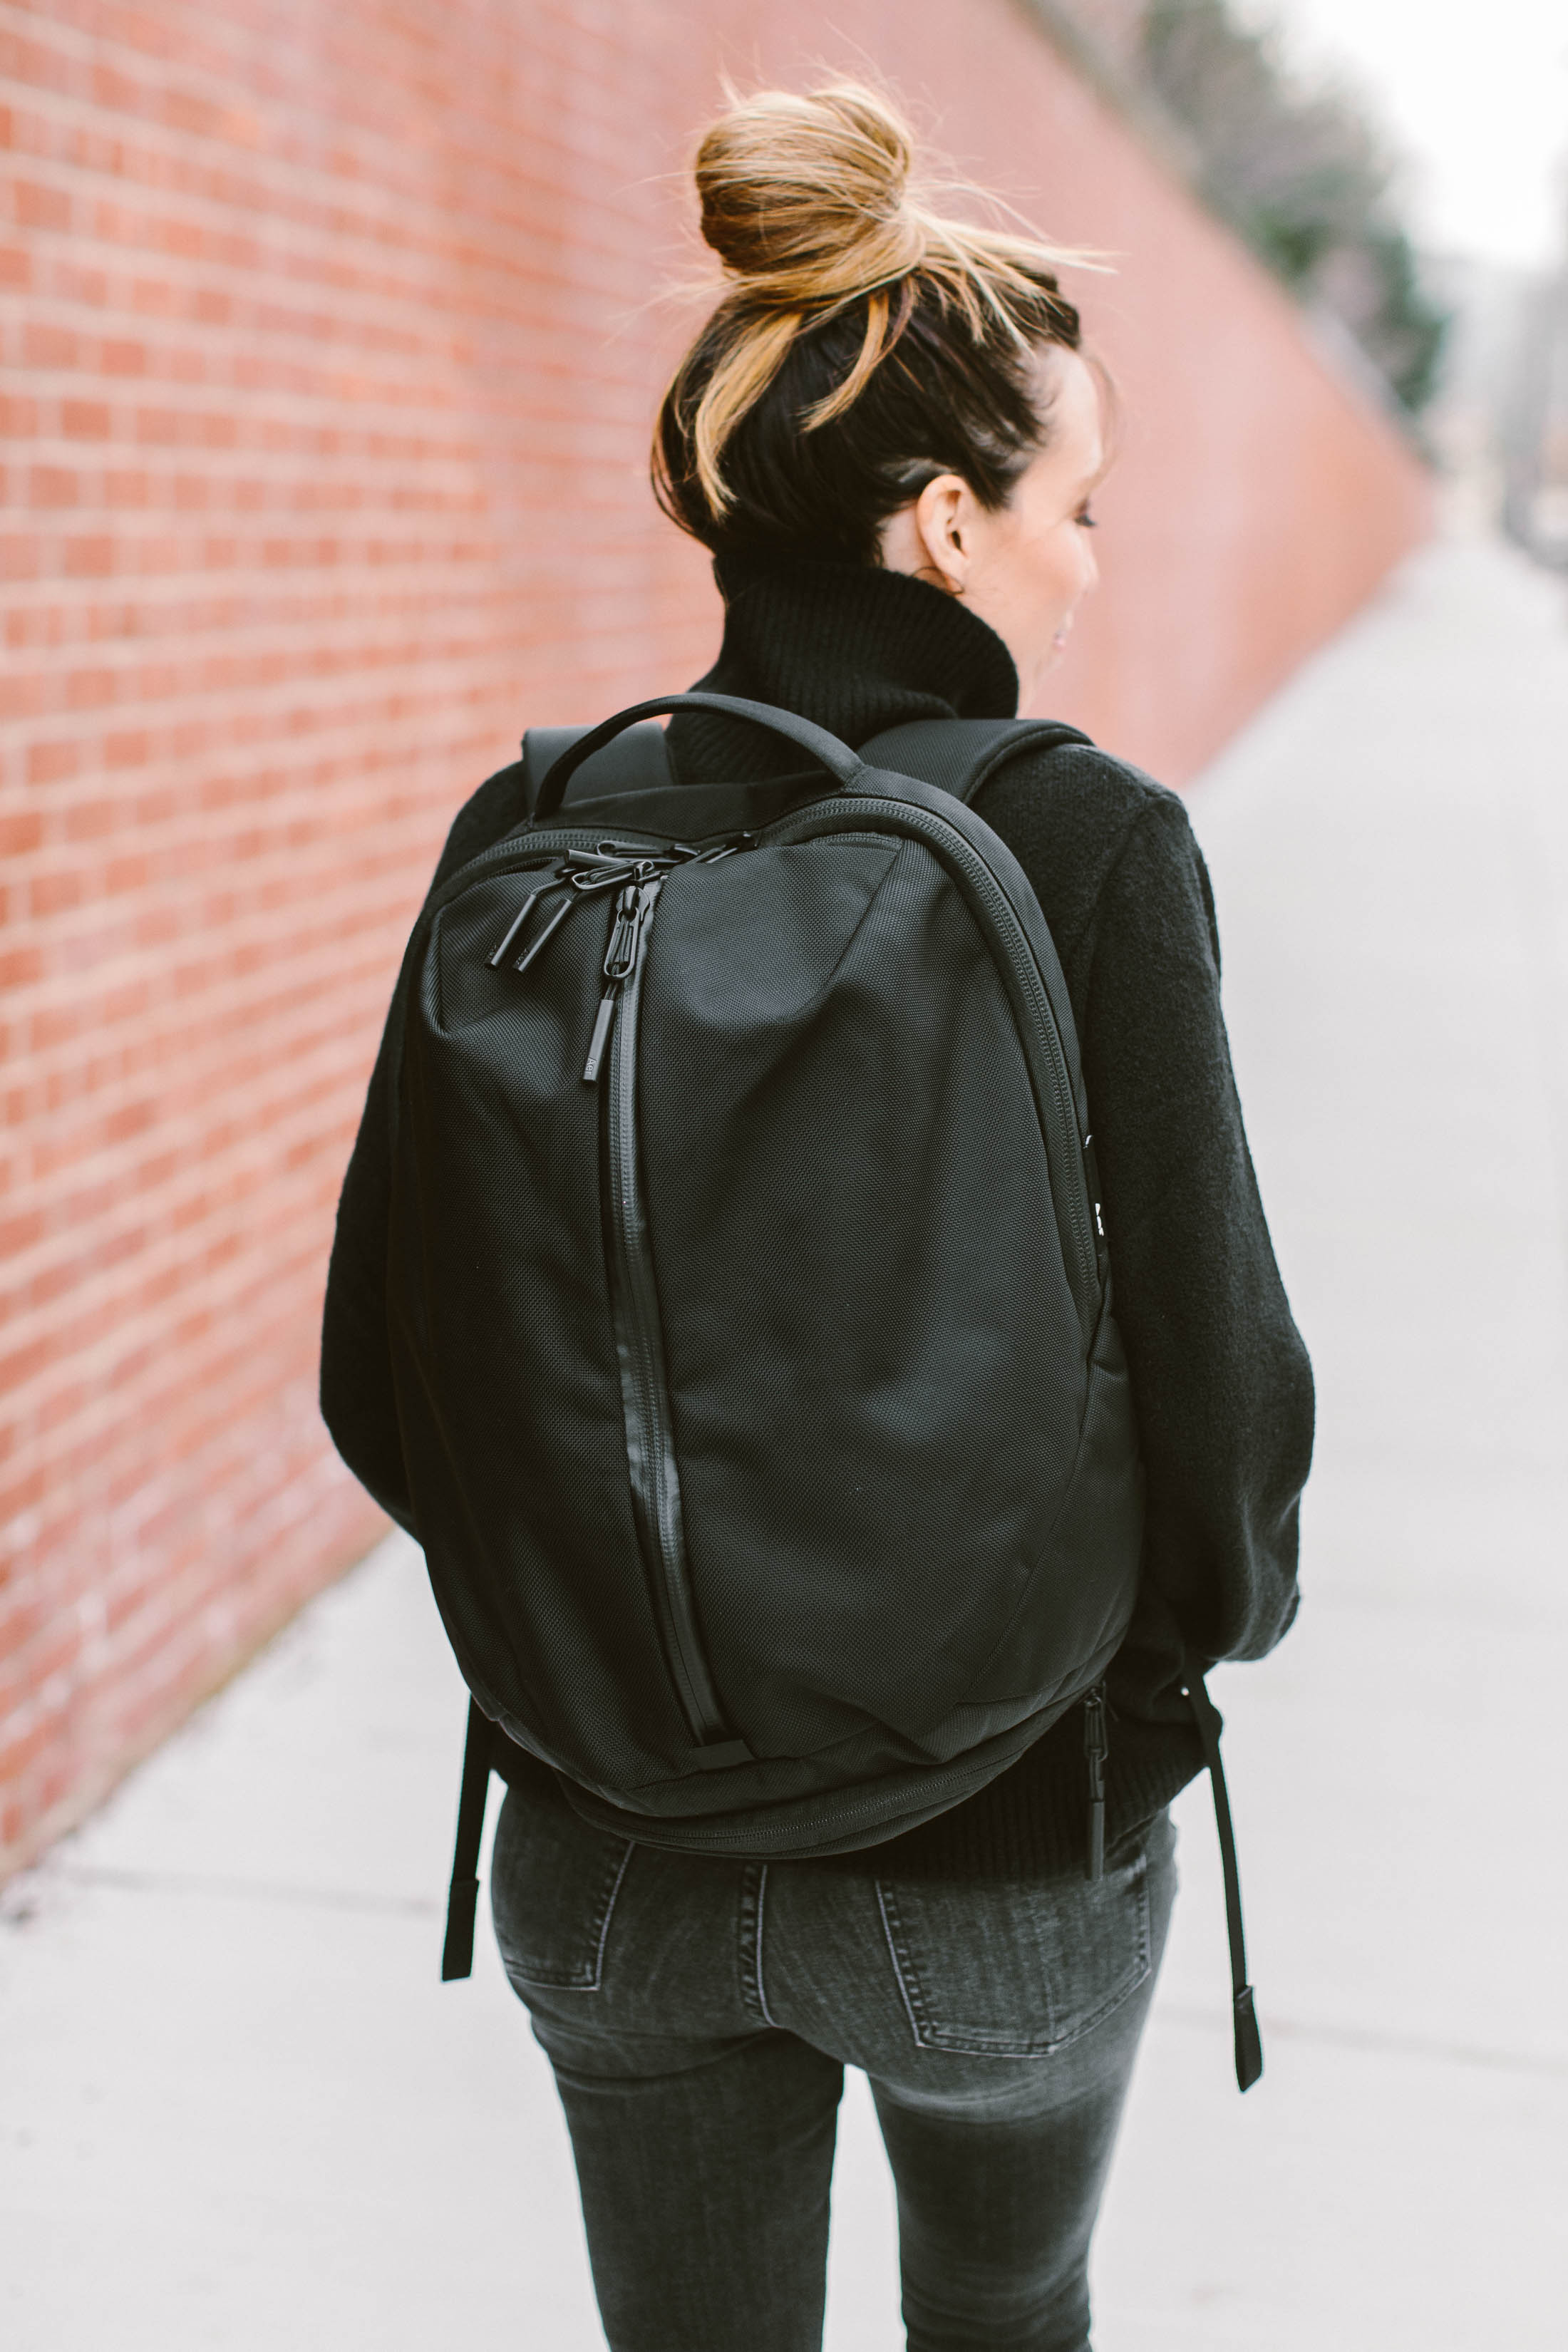 Hold up! The time for that daily, unexpected all-black outfit —SO GOOD for walkability & urban adventures — is now! Here's how to nail this go-to look.